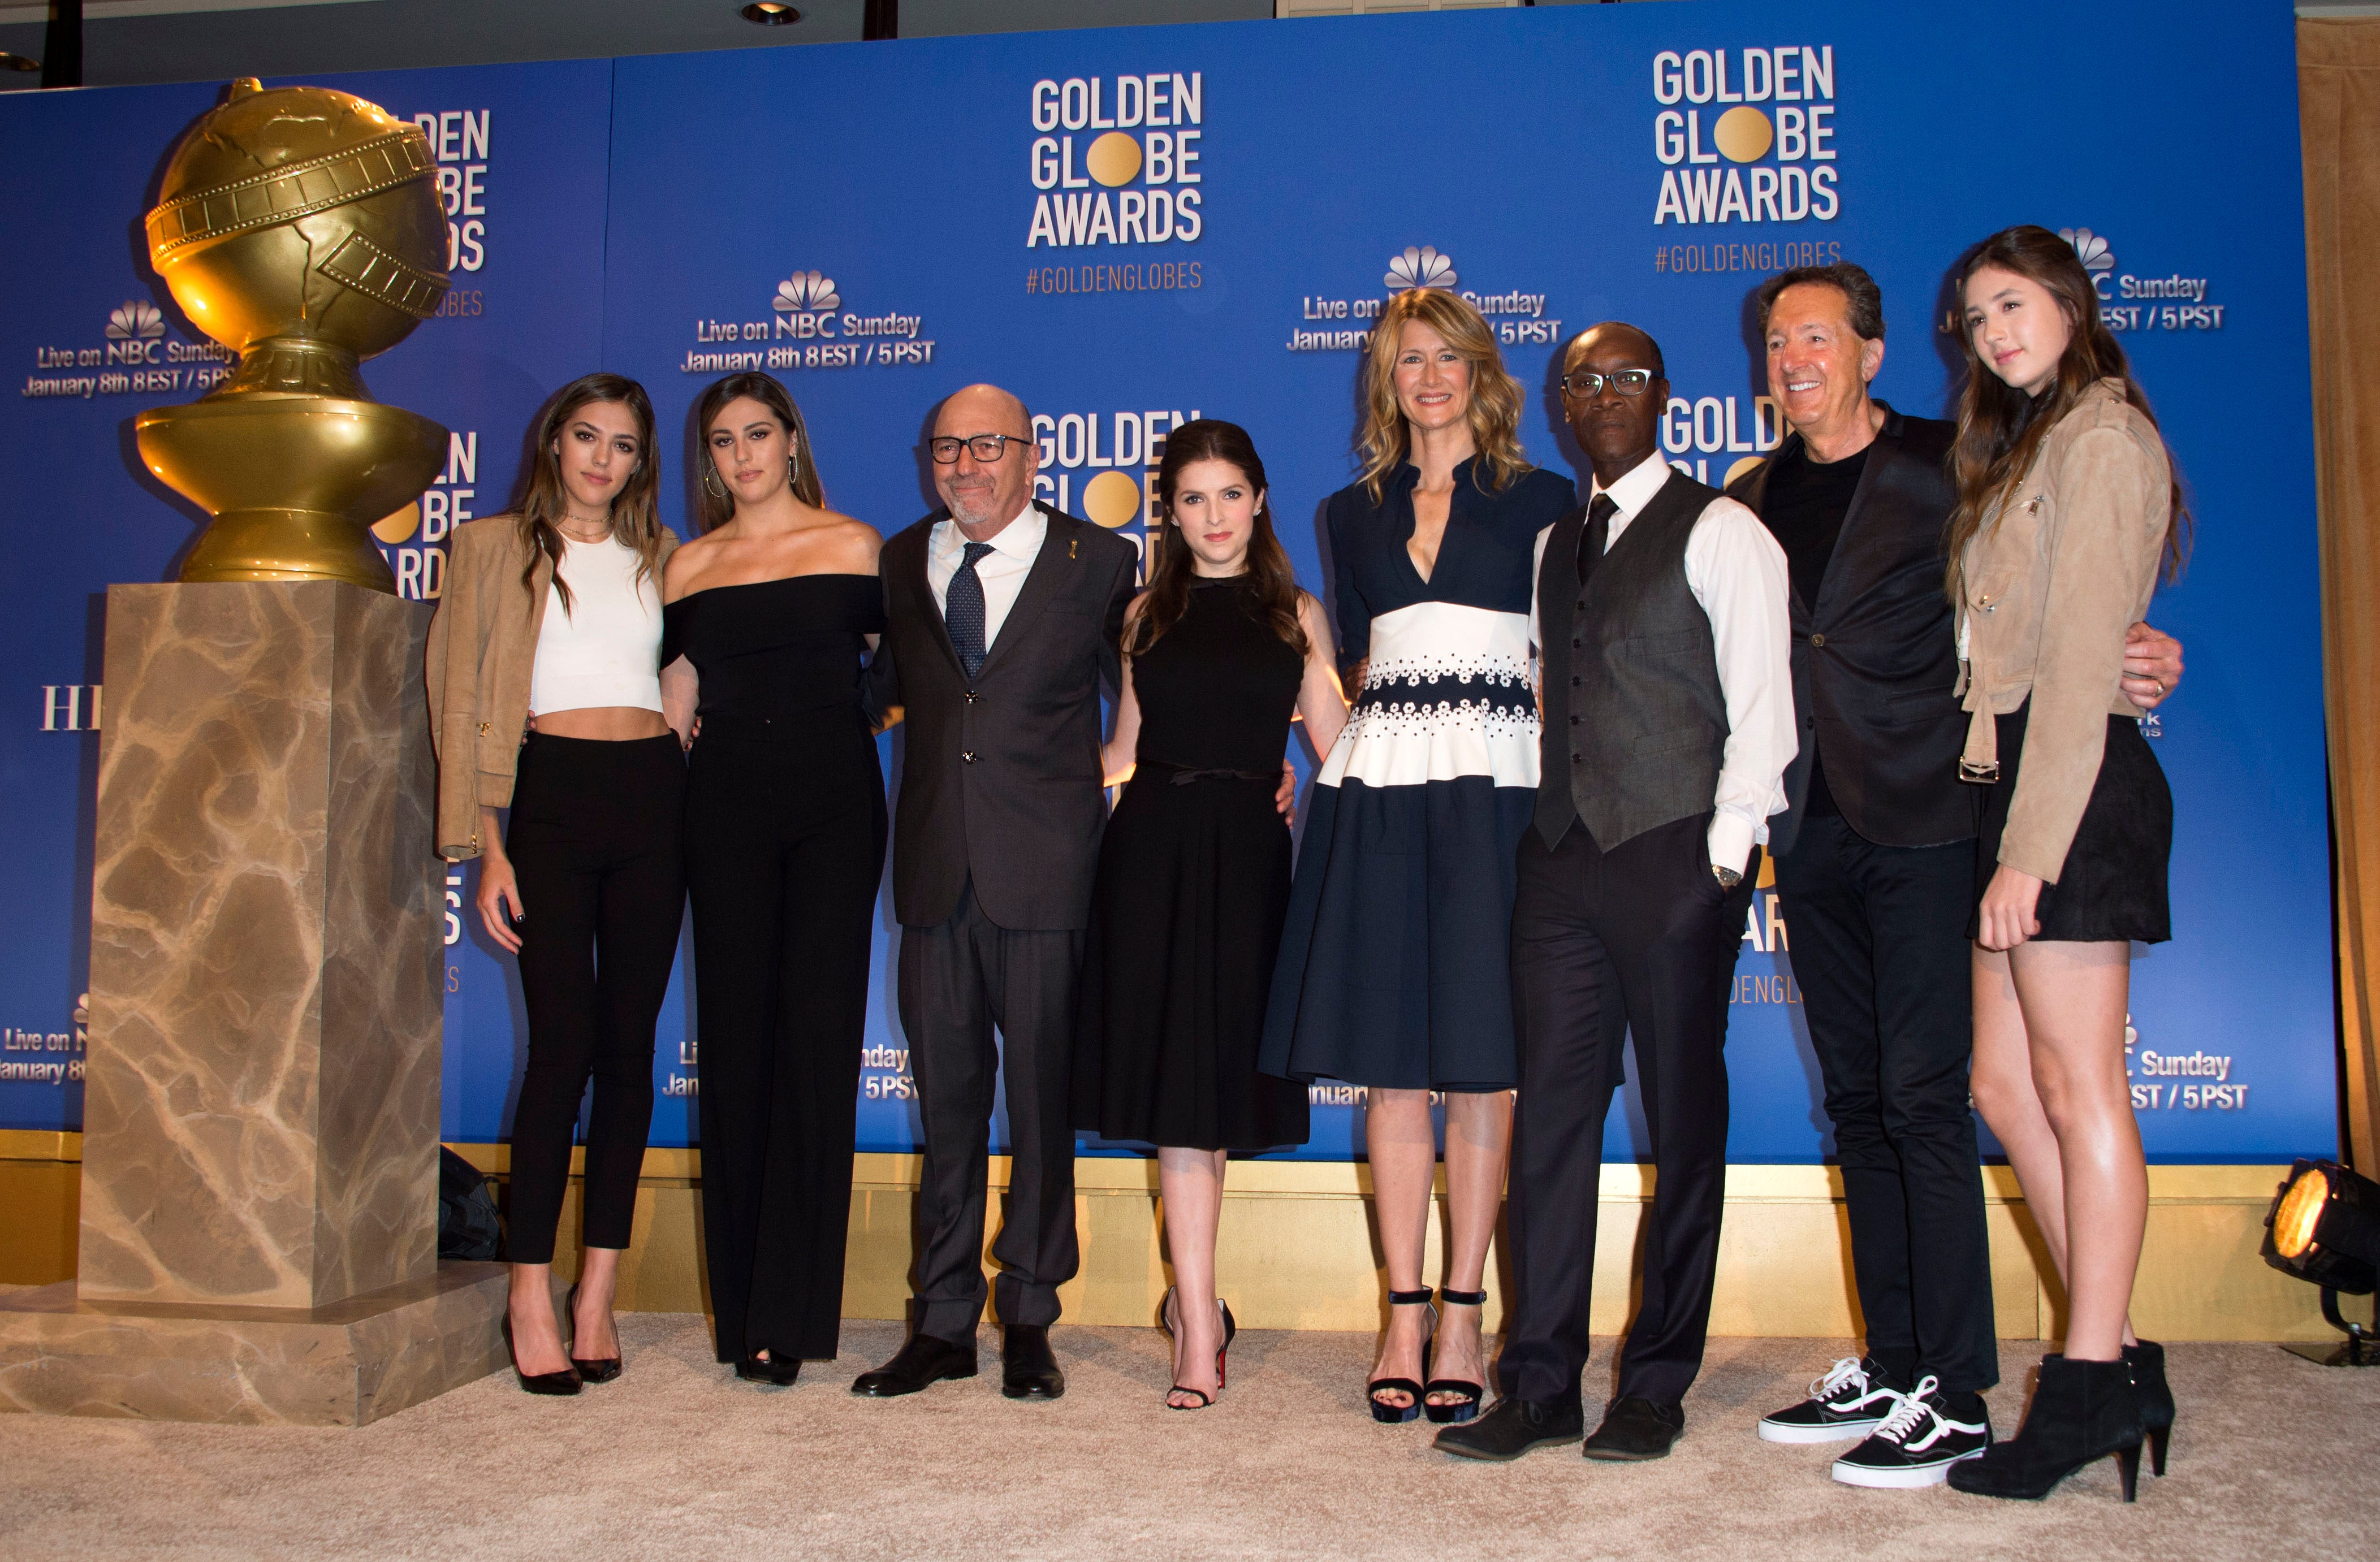 Don Cheadle presents at the Golden Globes Nominations Announcement, December 2016